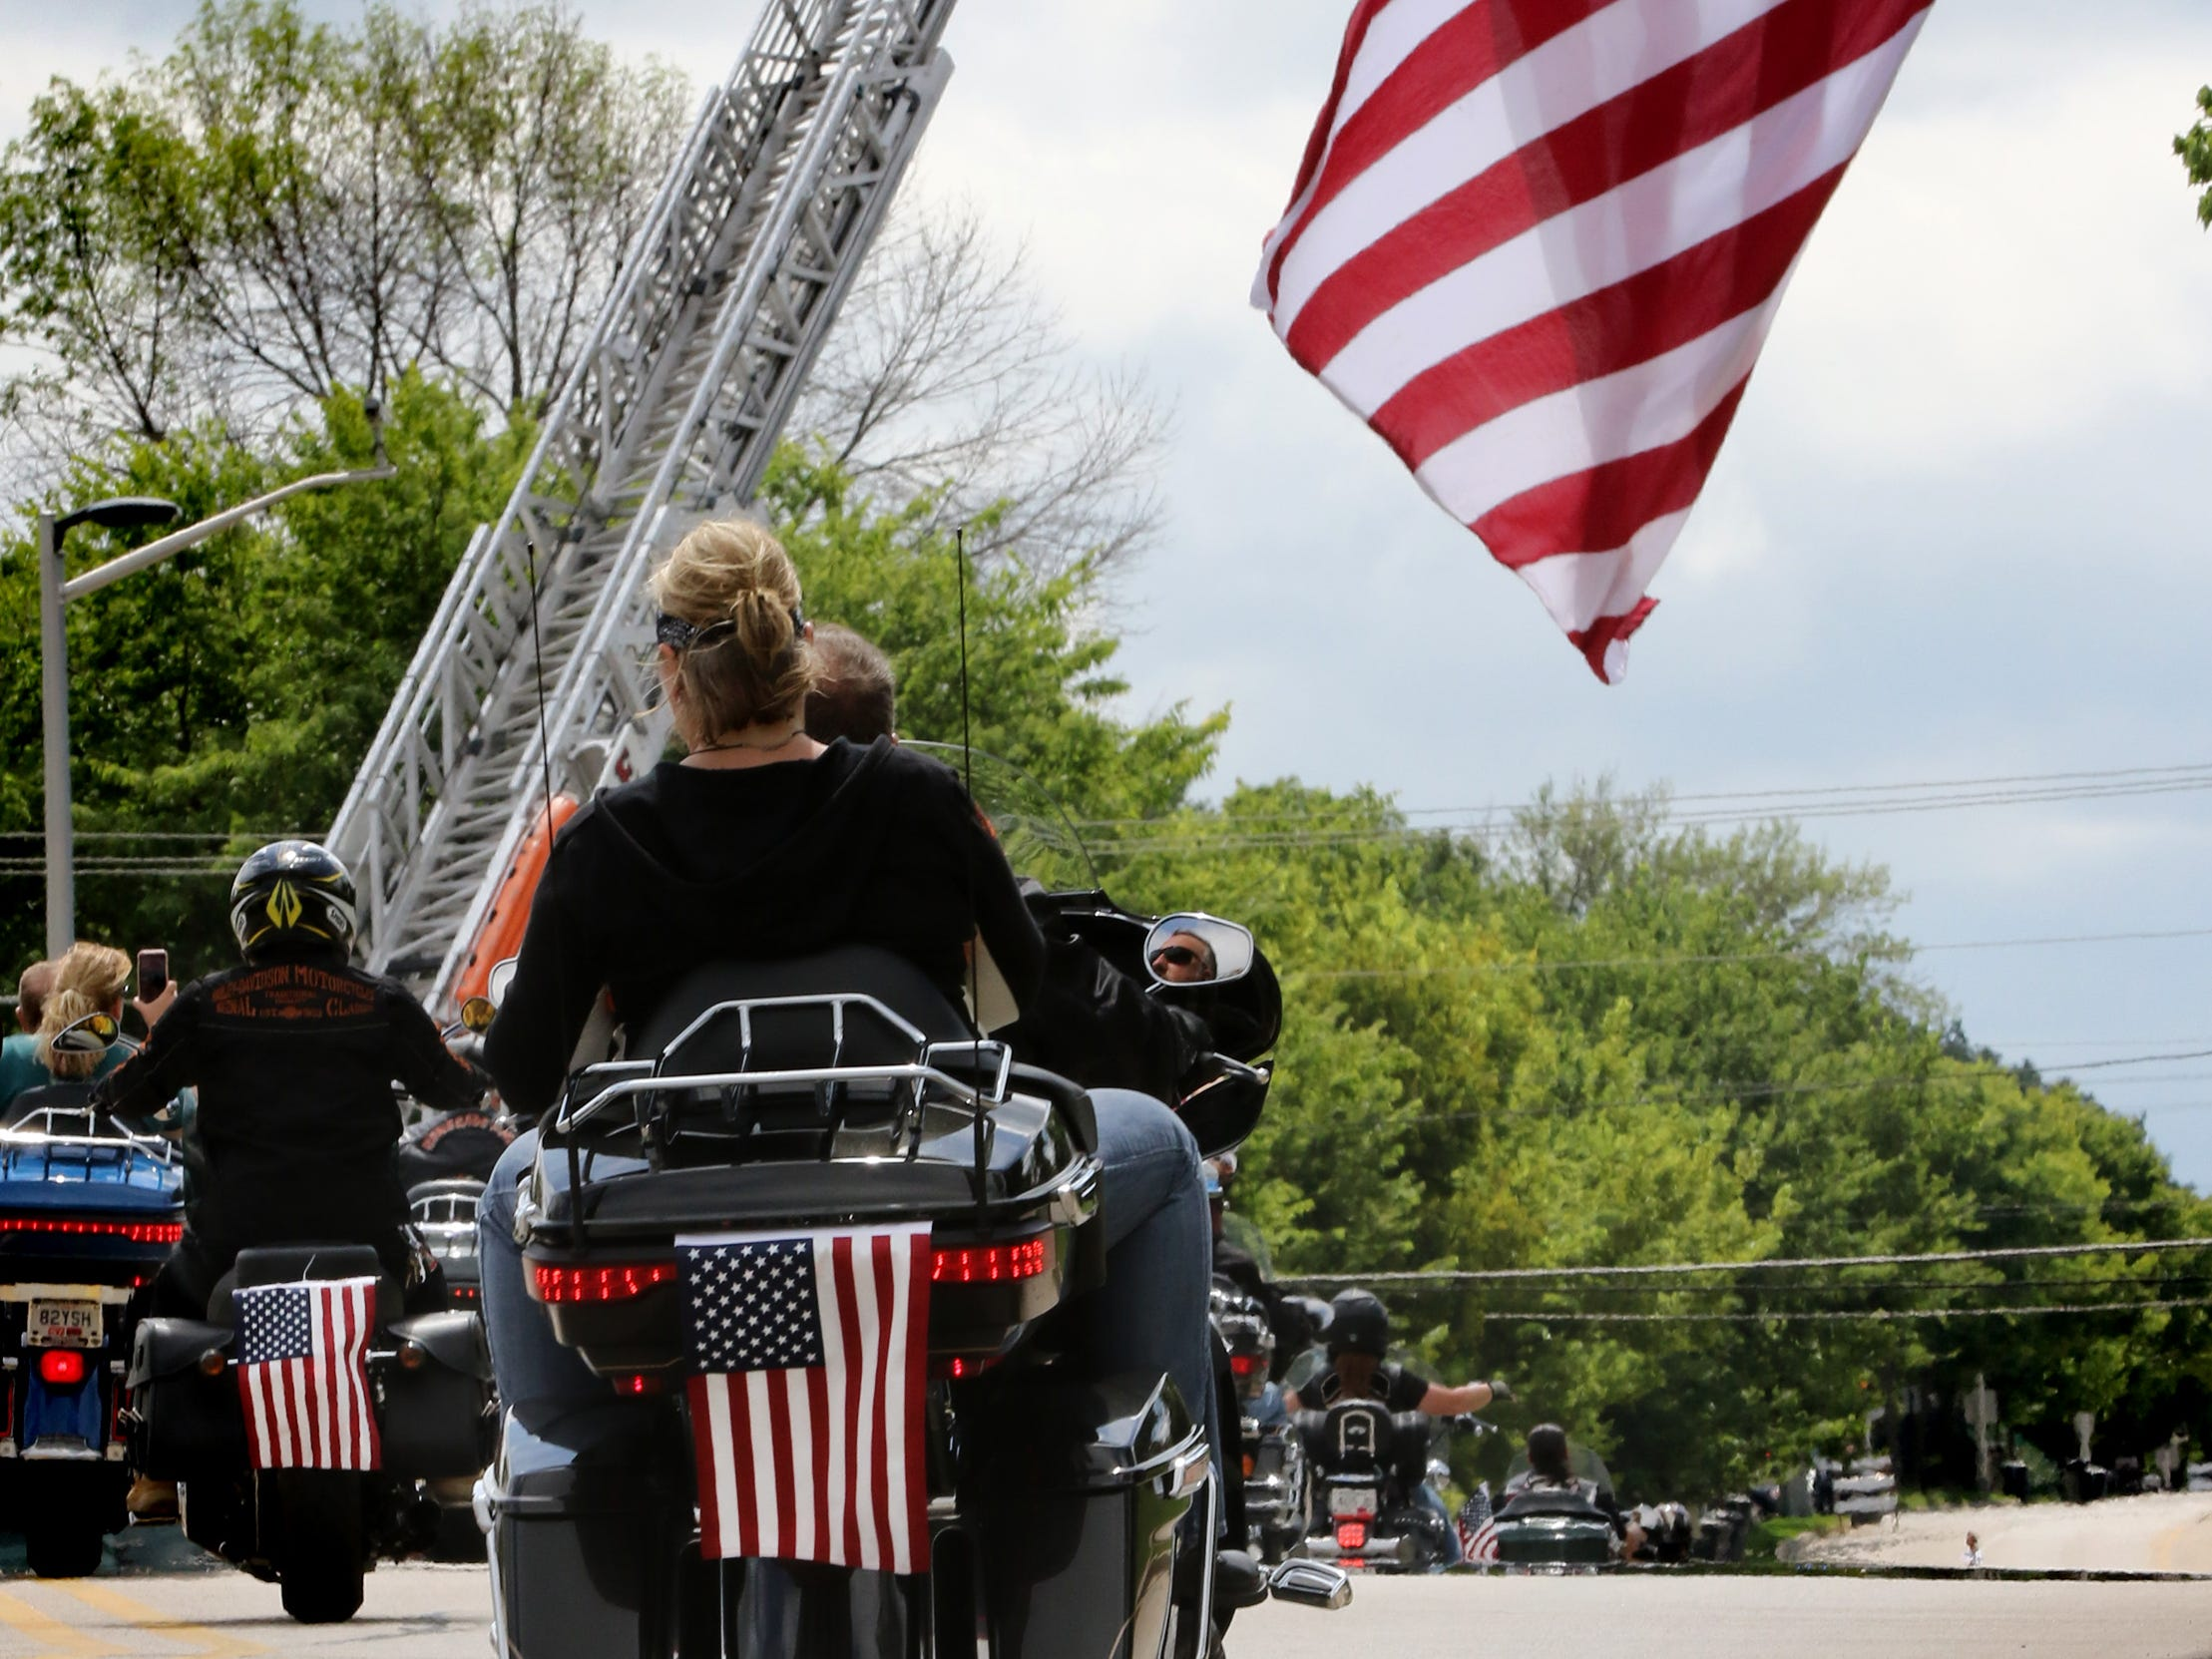 Harley enthusiasts roll south on 60th Street from the House of Harley-Davidson on Wednesday on a charity ride benefiting the Wisconsin Veterans Network though southern Milwaukee County communities to Veterans Park on the Milwaukee lakefront.